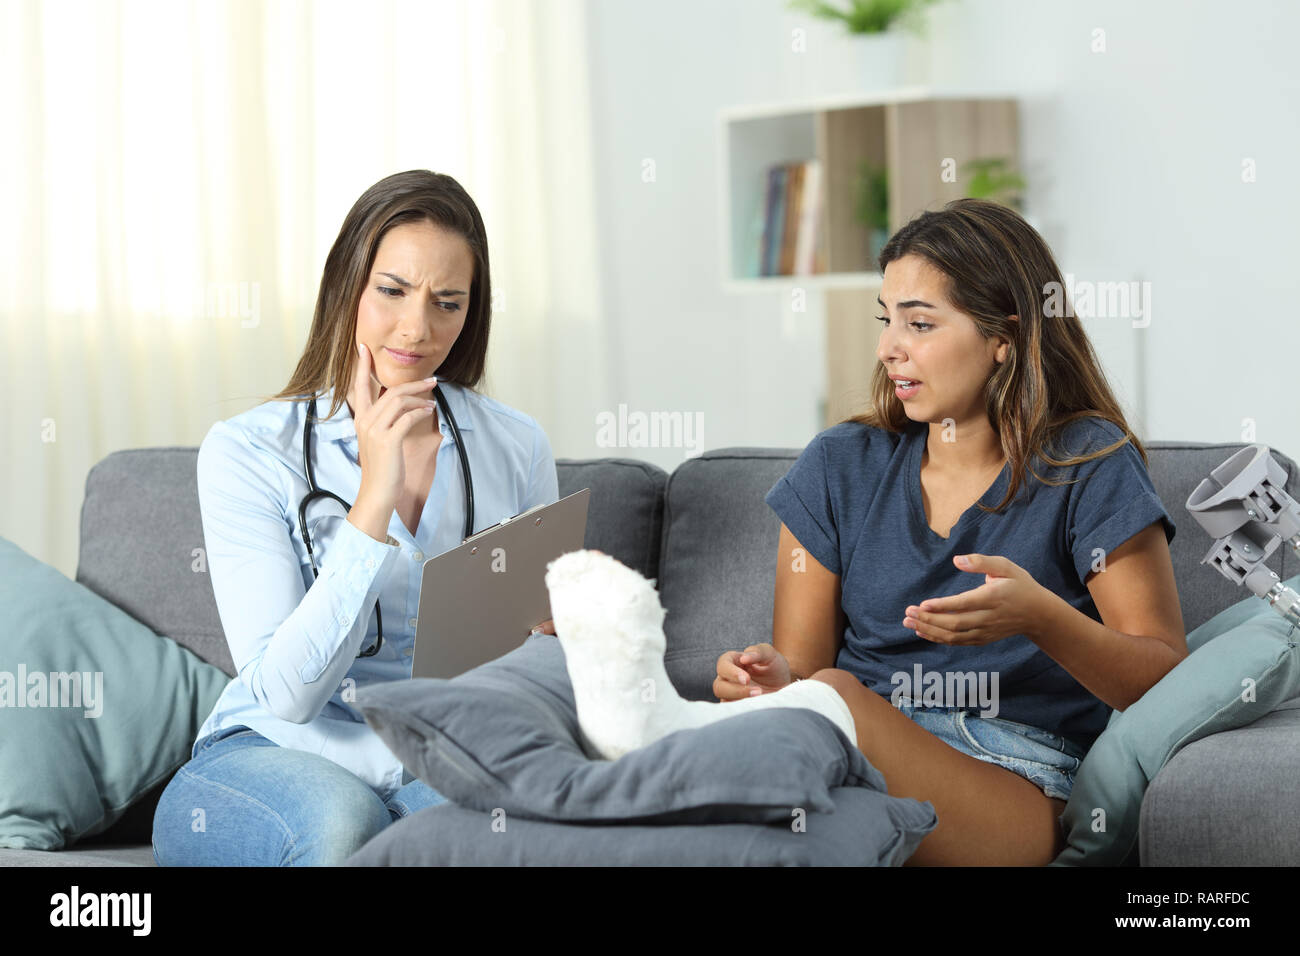 Worried doctor and patient talking sitting on a couch in the living room at home - Stock Image